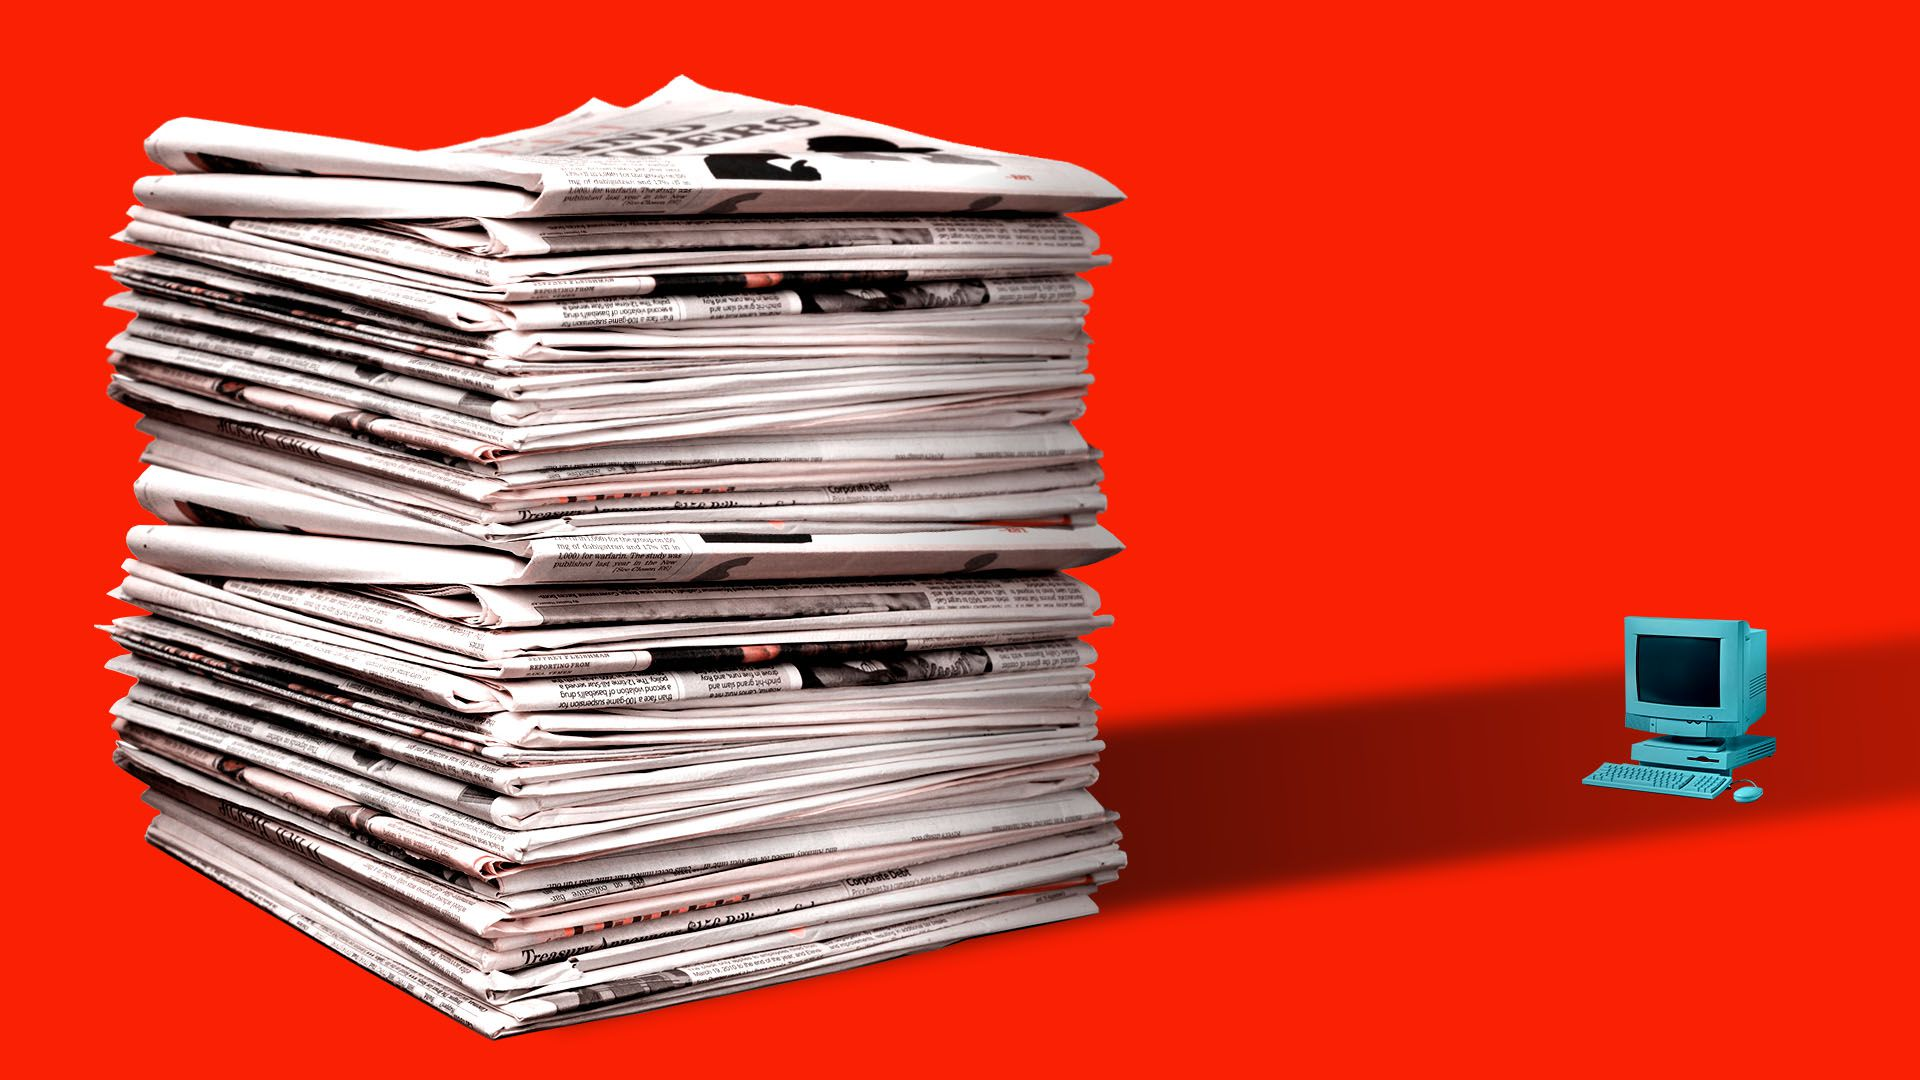 Illustration of giant stack of newspapers casting a shadow on a small computer